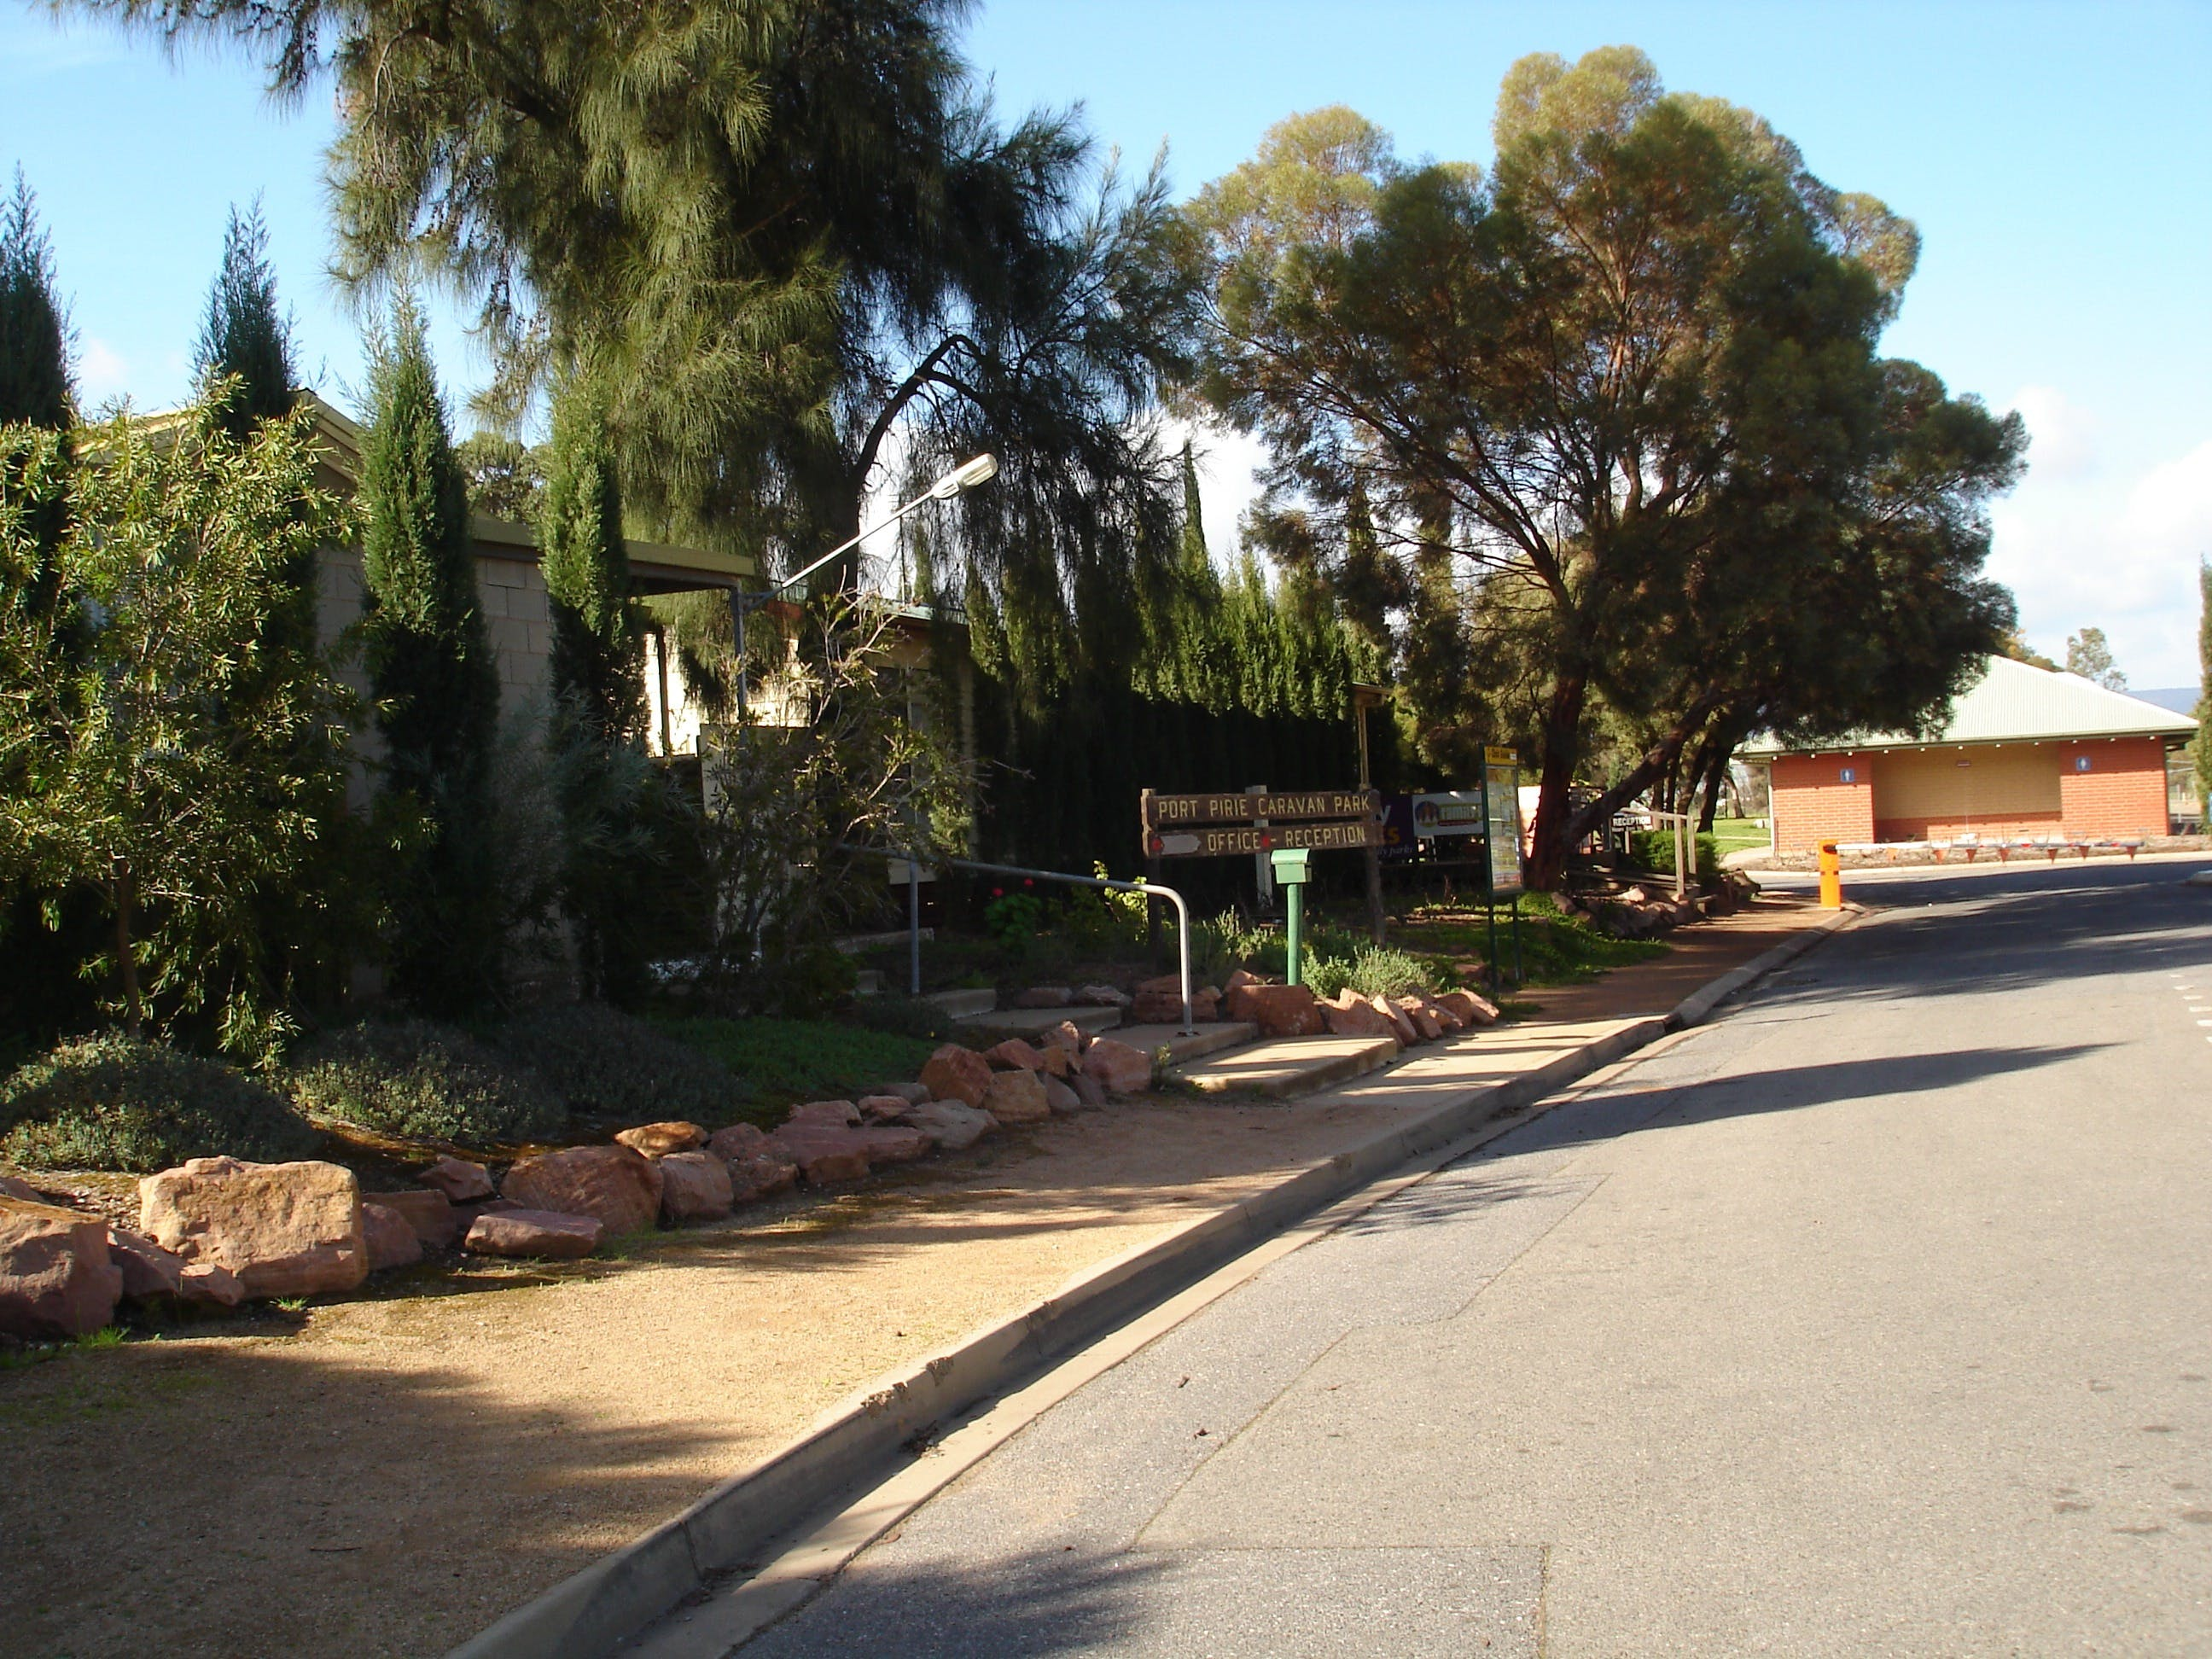 Port Pirie Beach Caravan Park - Accommodation Yamba